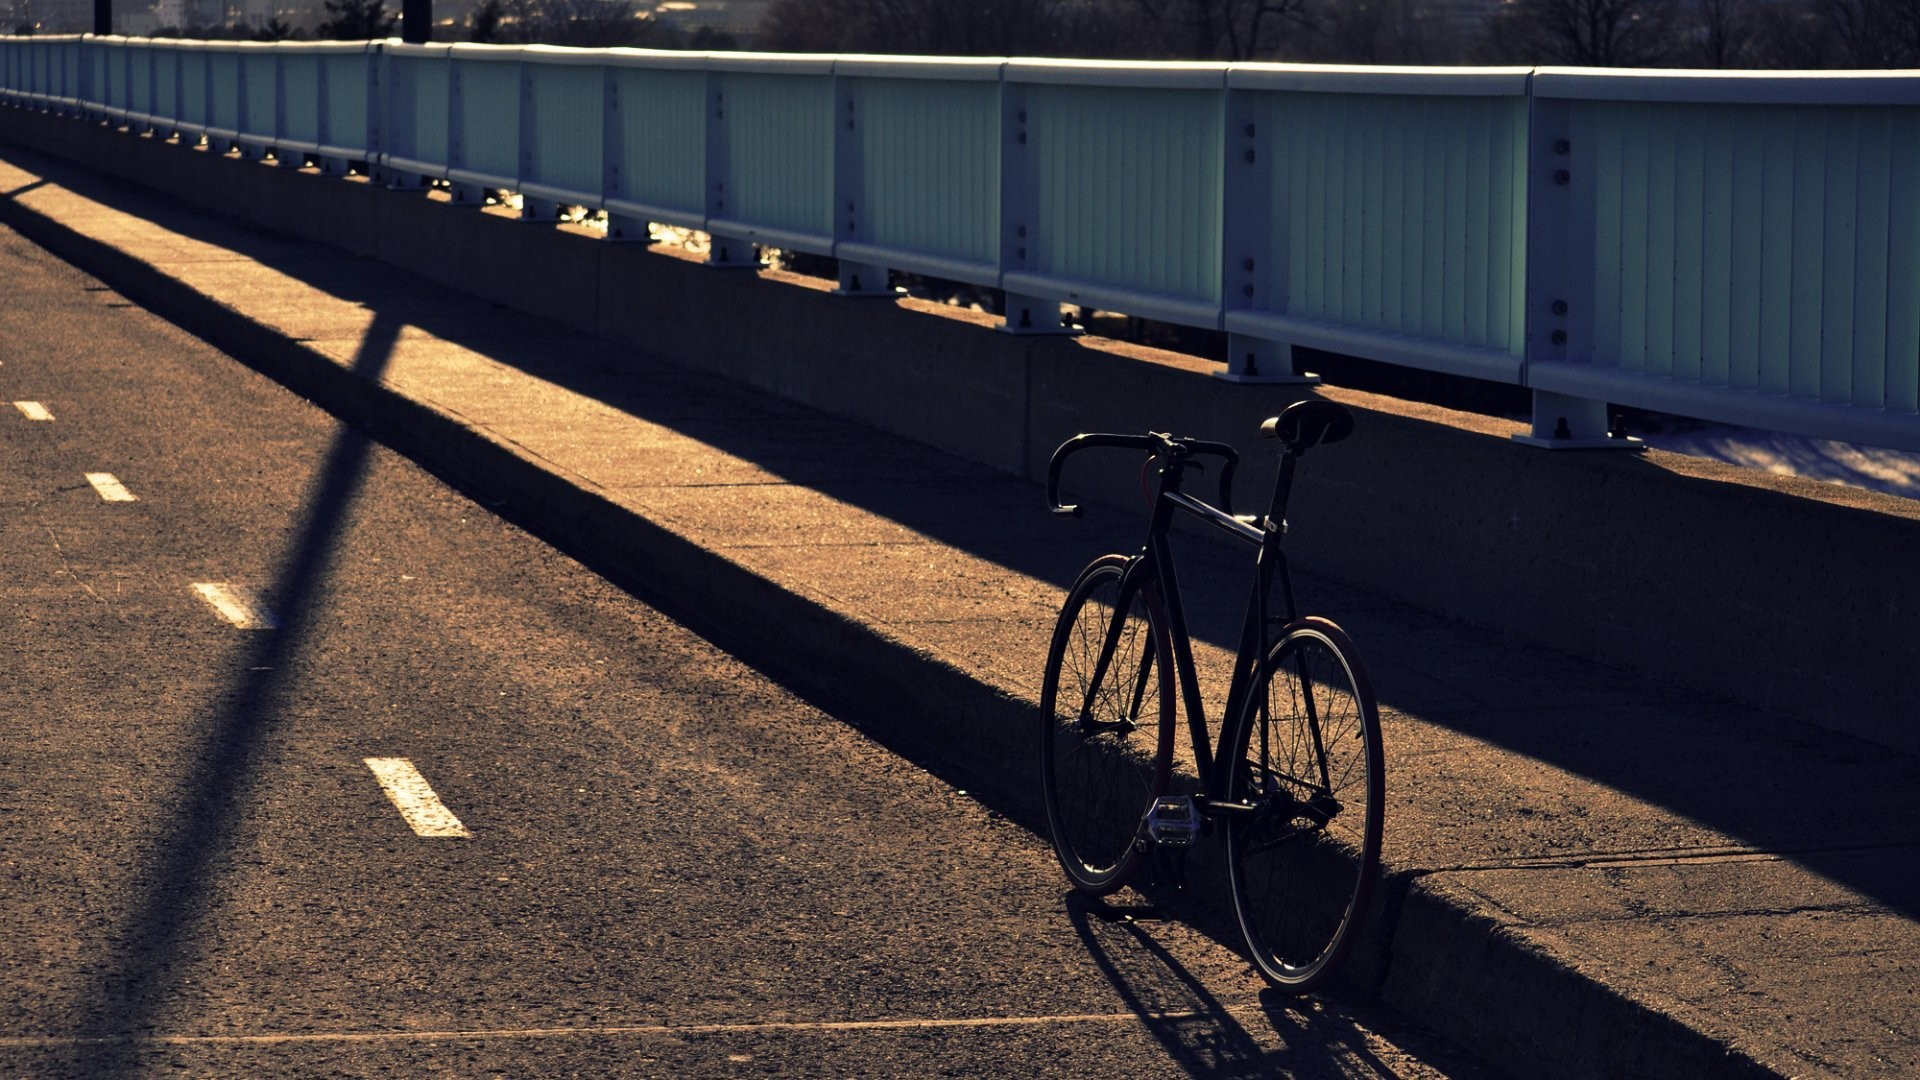 Bicycles photography bridges urban motorbikes street ...